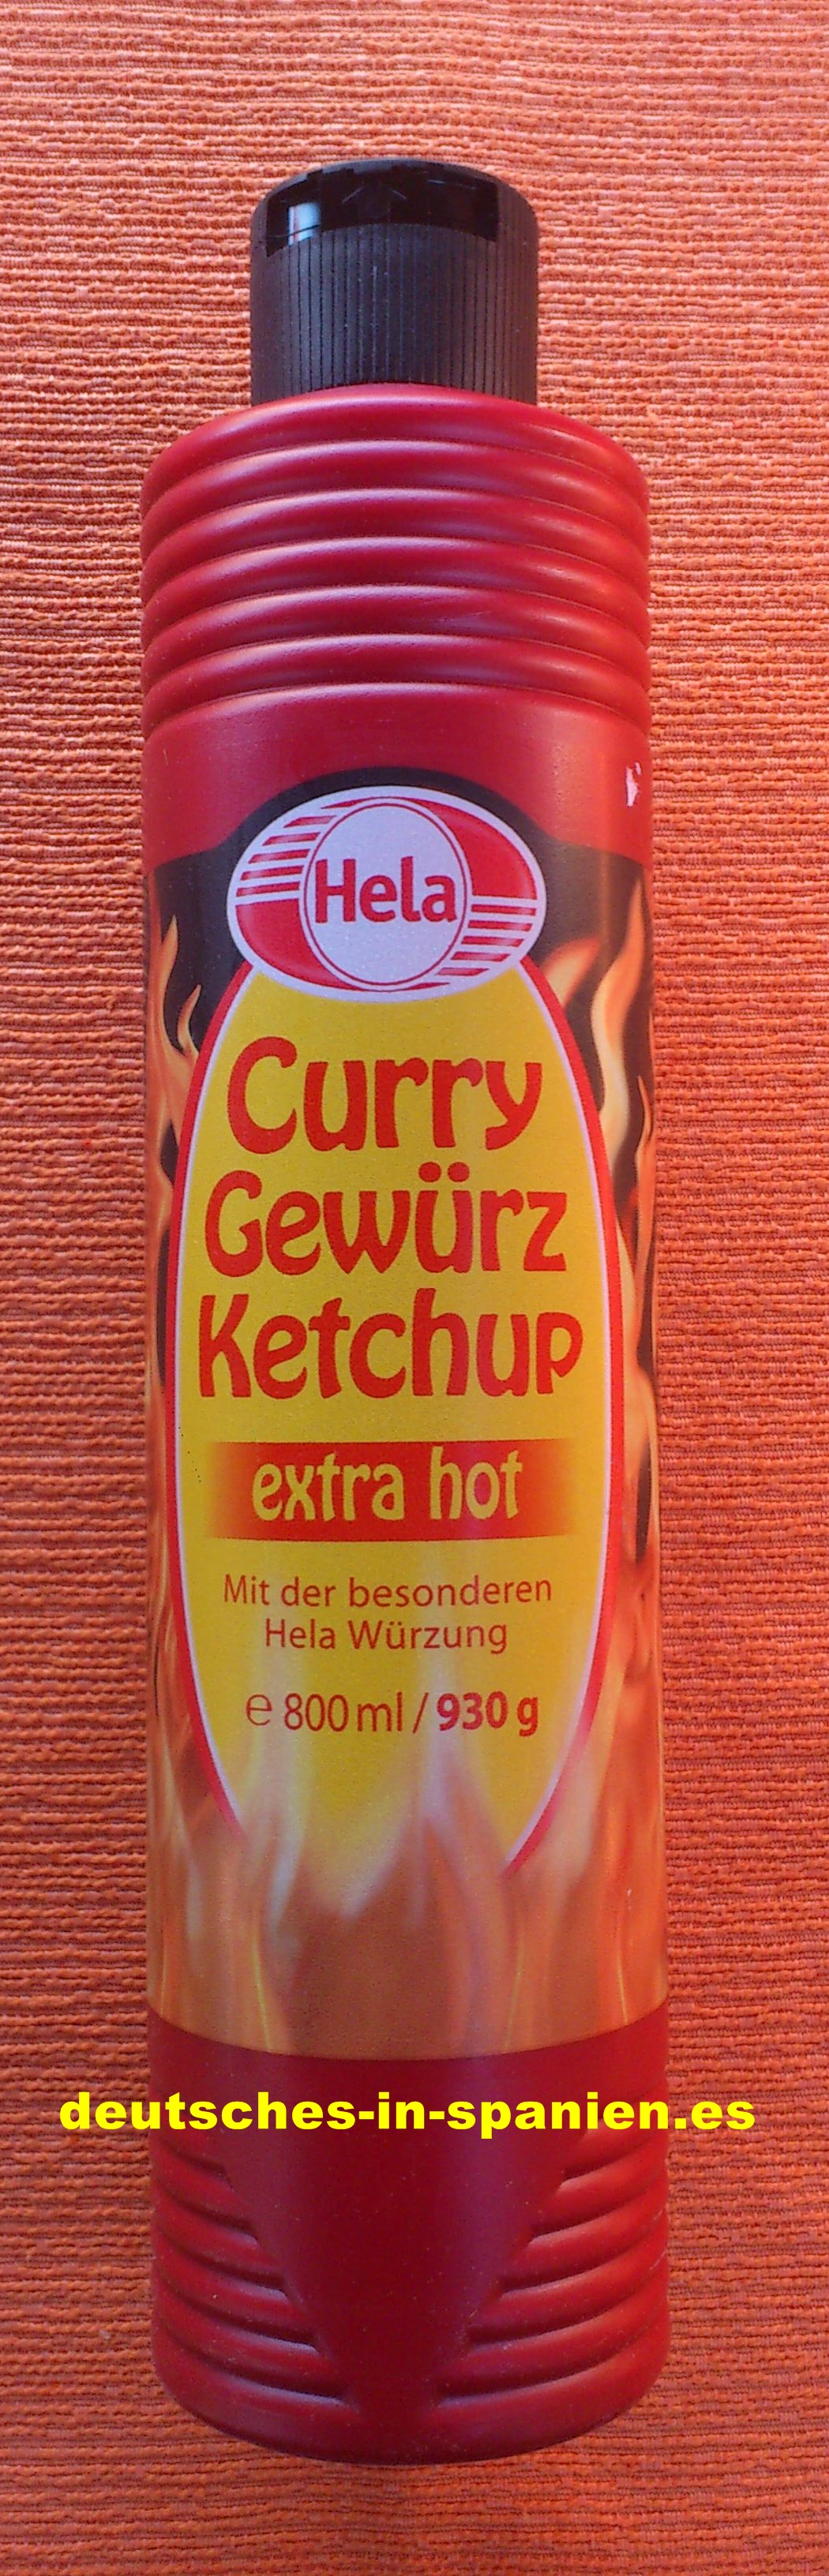 Hela Curry Gewürz Ketchup Extra Hot